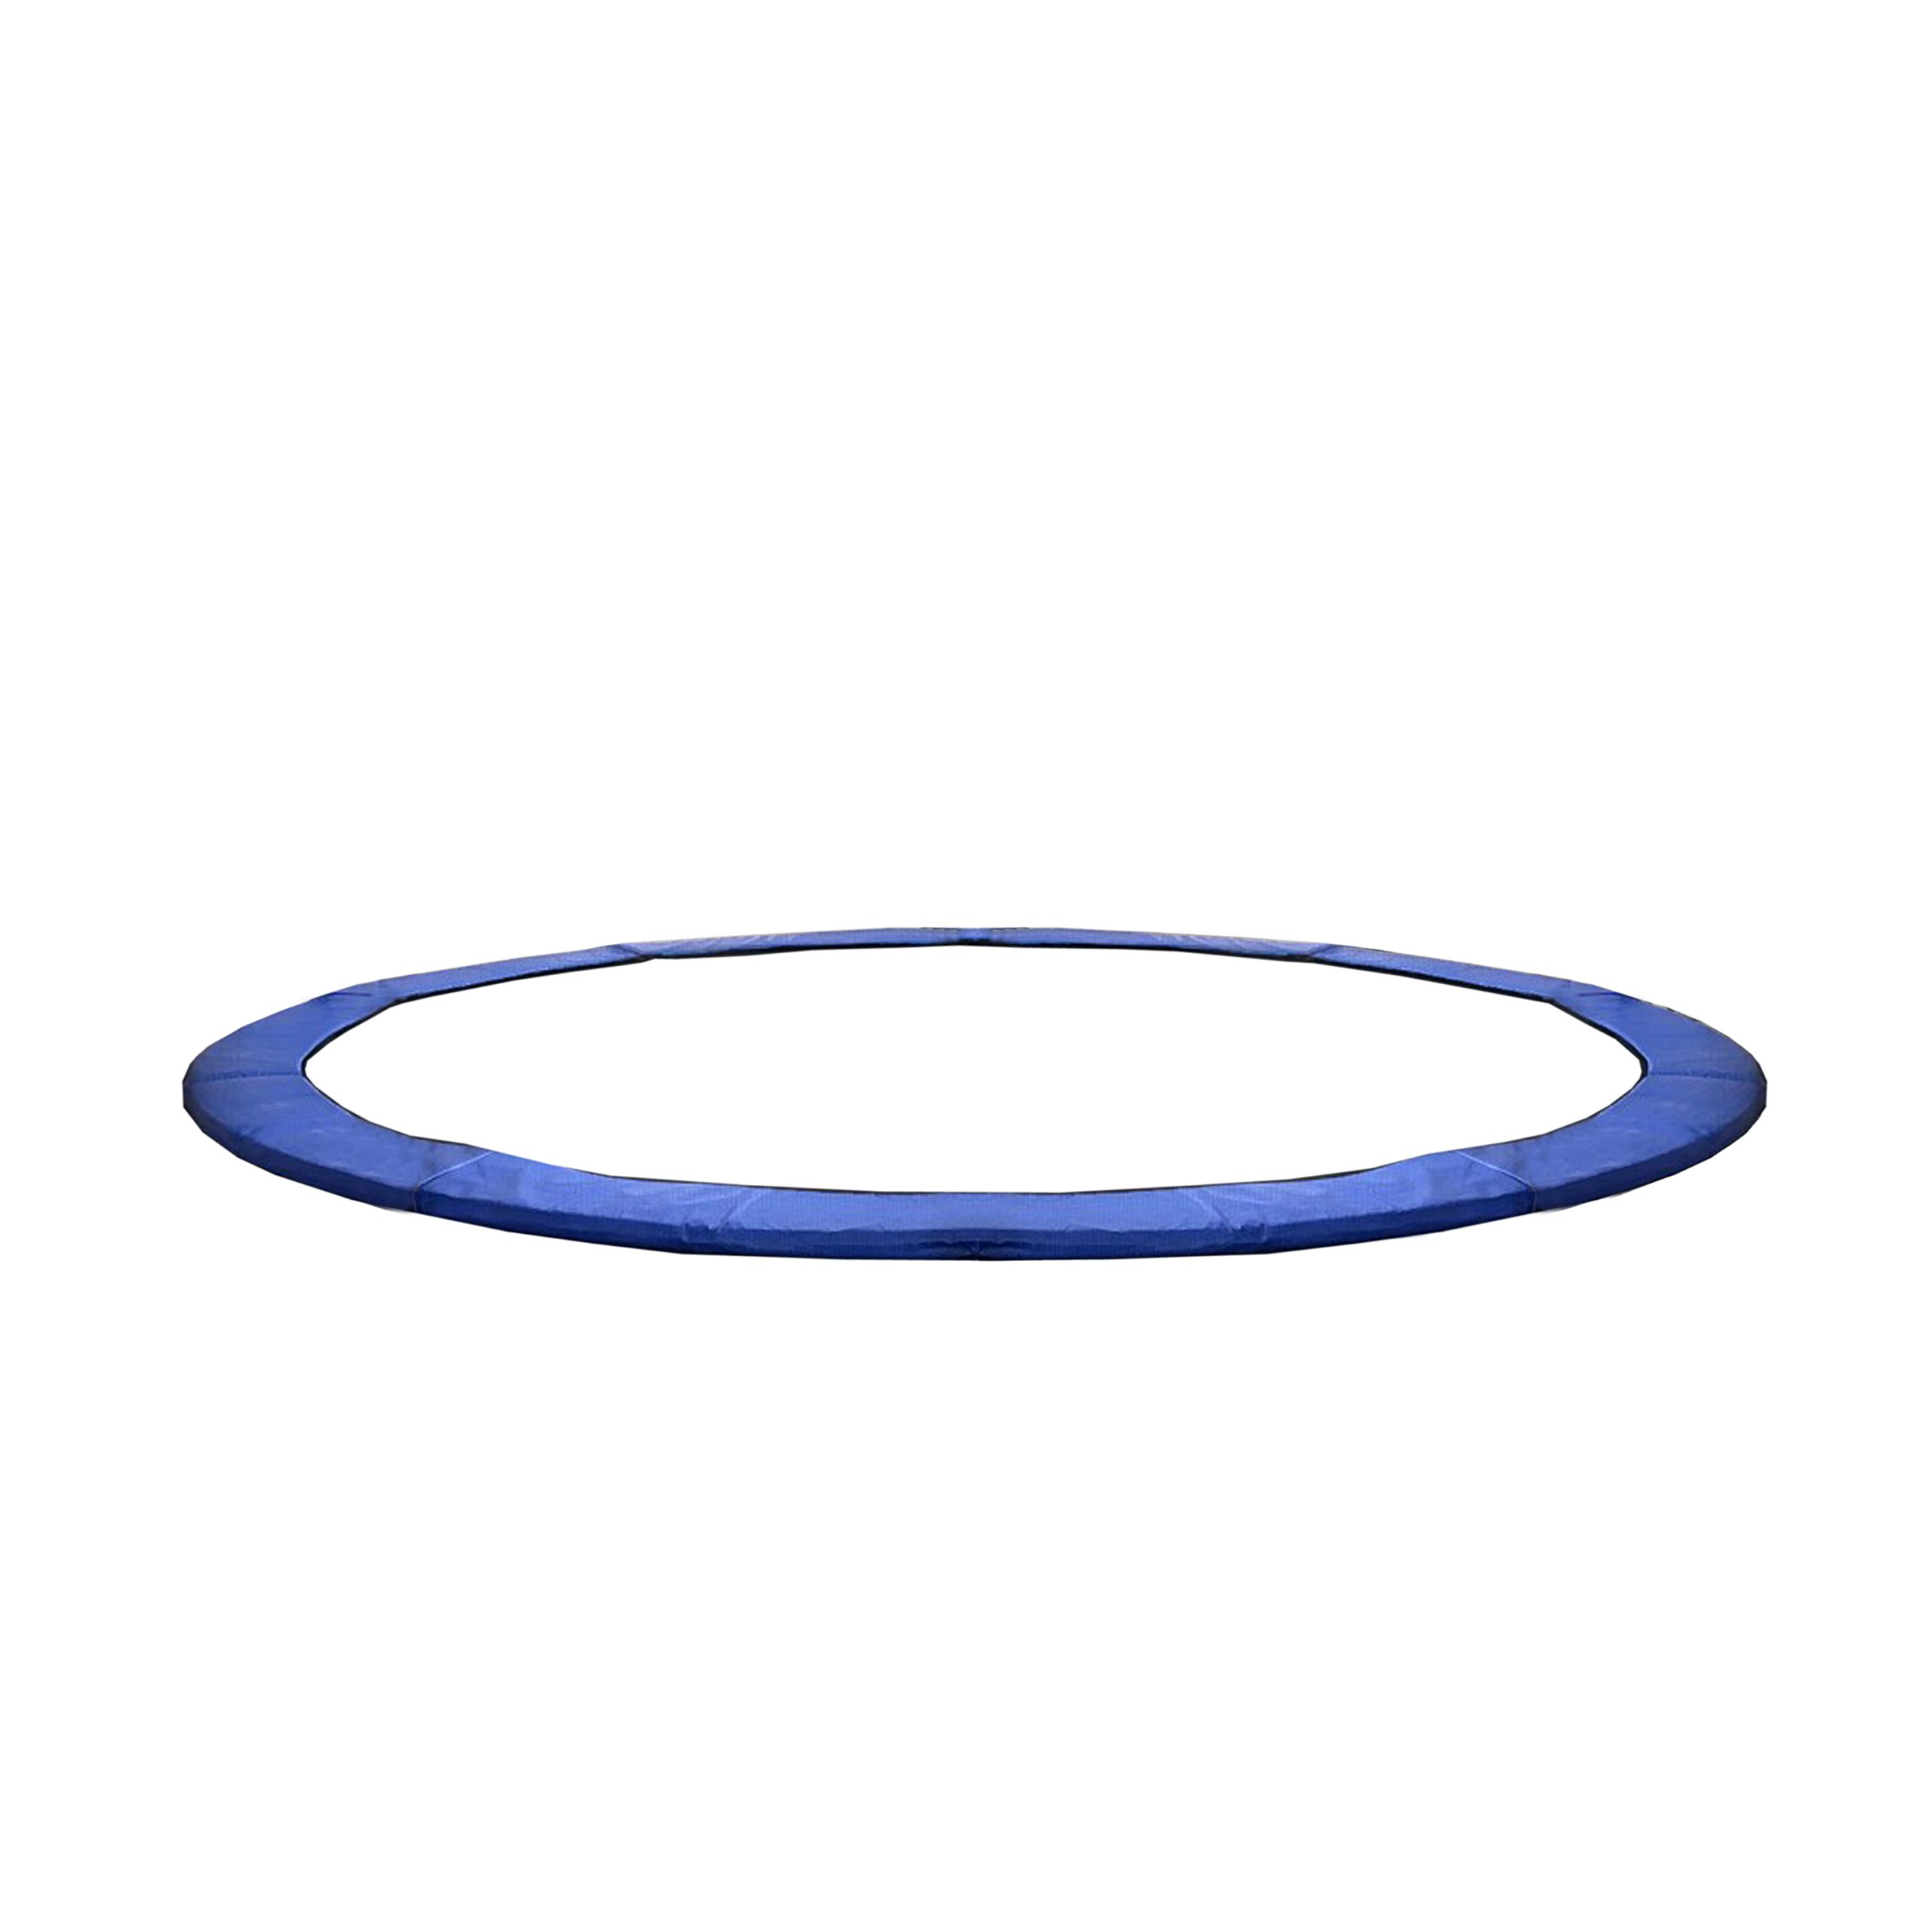 ALEKO TRP16SP Round Trampoline Safety Pad for 16 Foot Trampolines EPE Foam Safety Pad, Blue Color by ALEKO (Image #3)